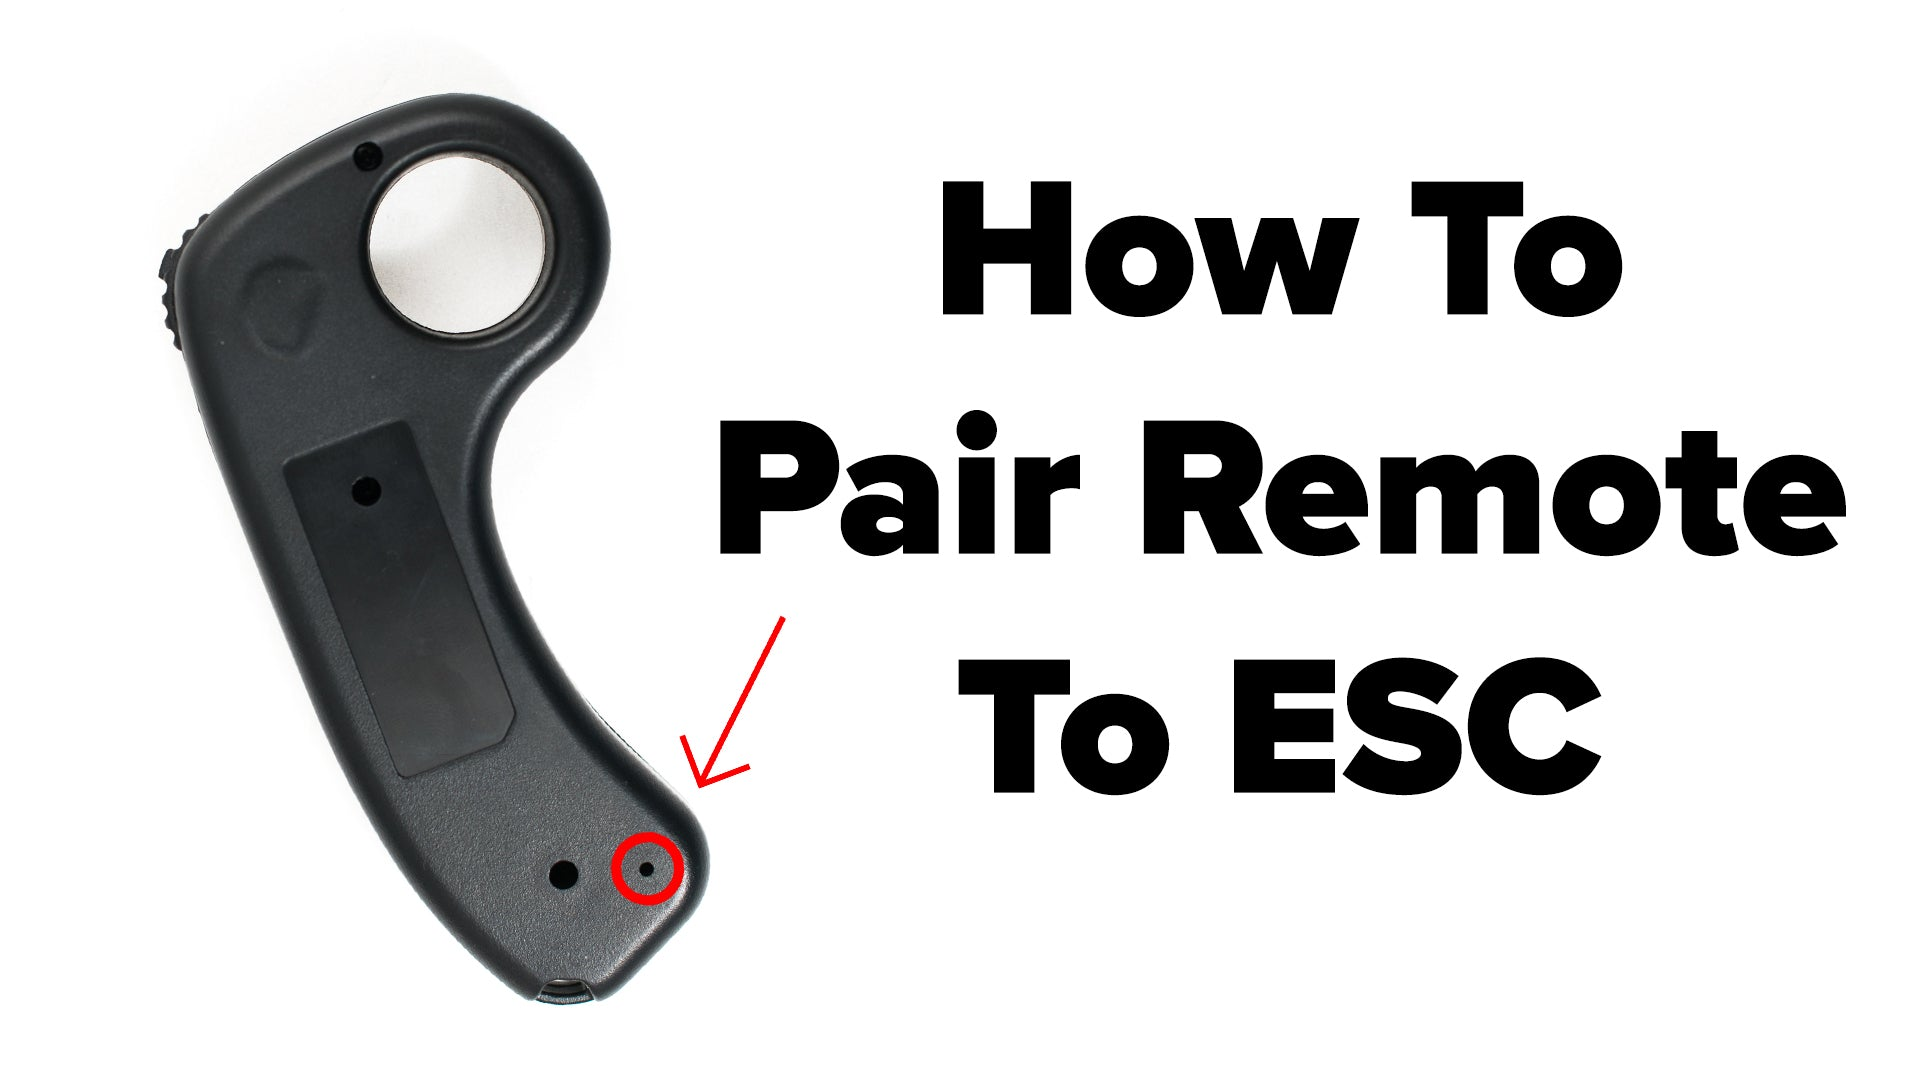 How to Pair Remote to ESC